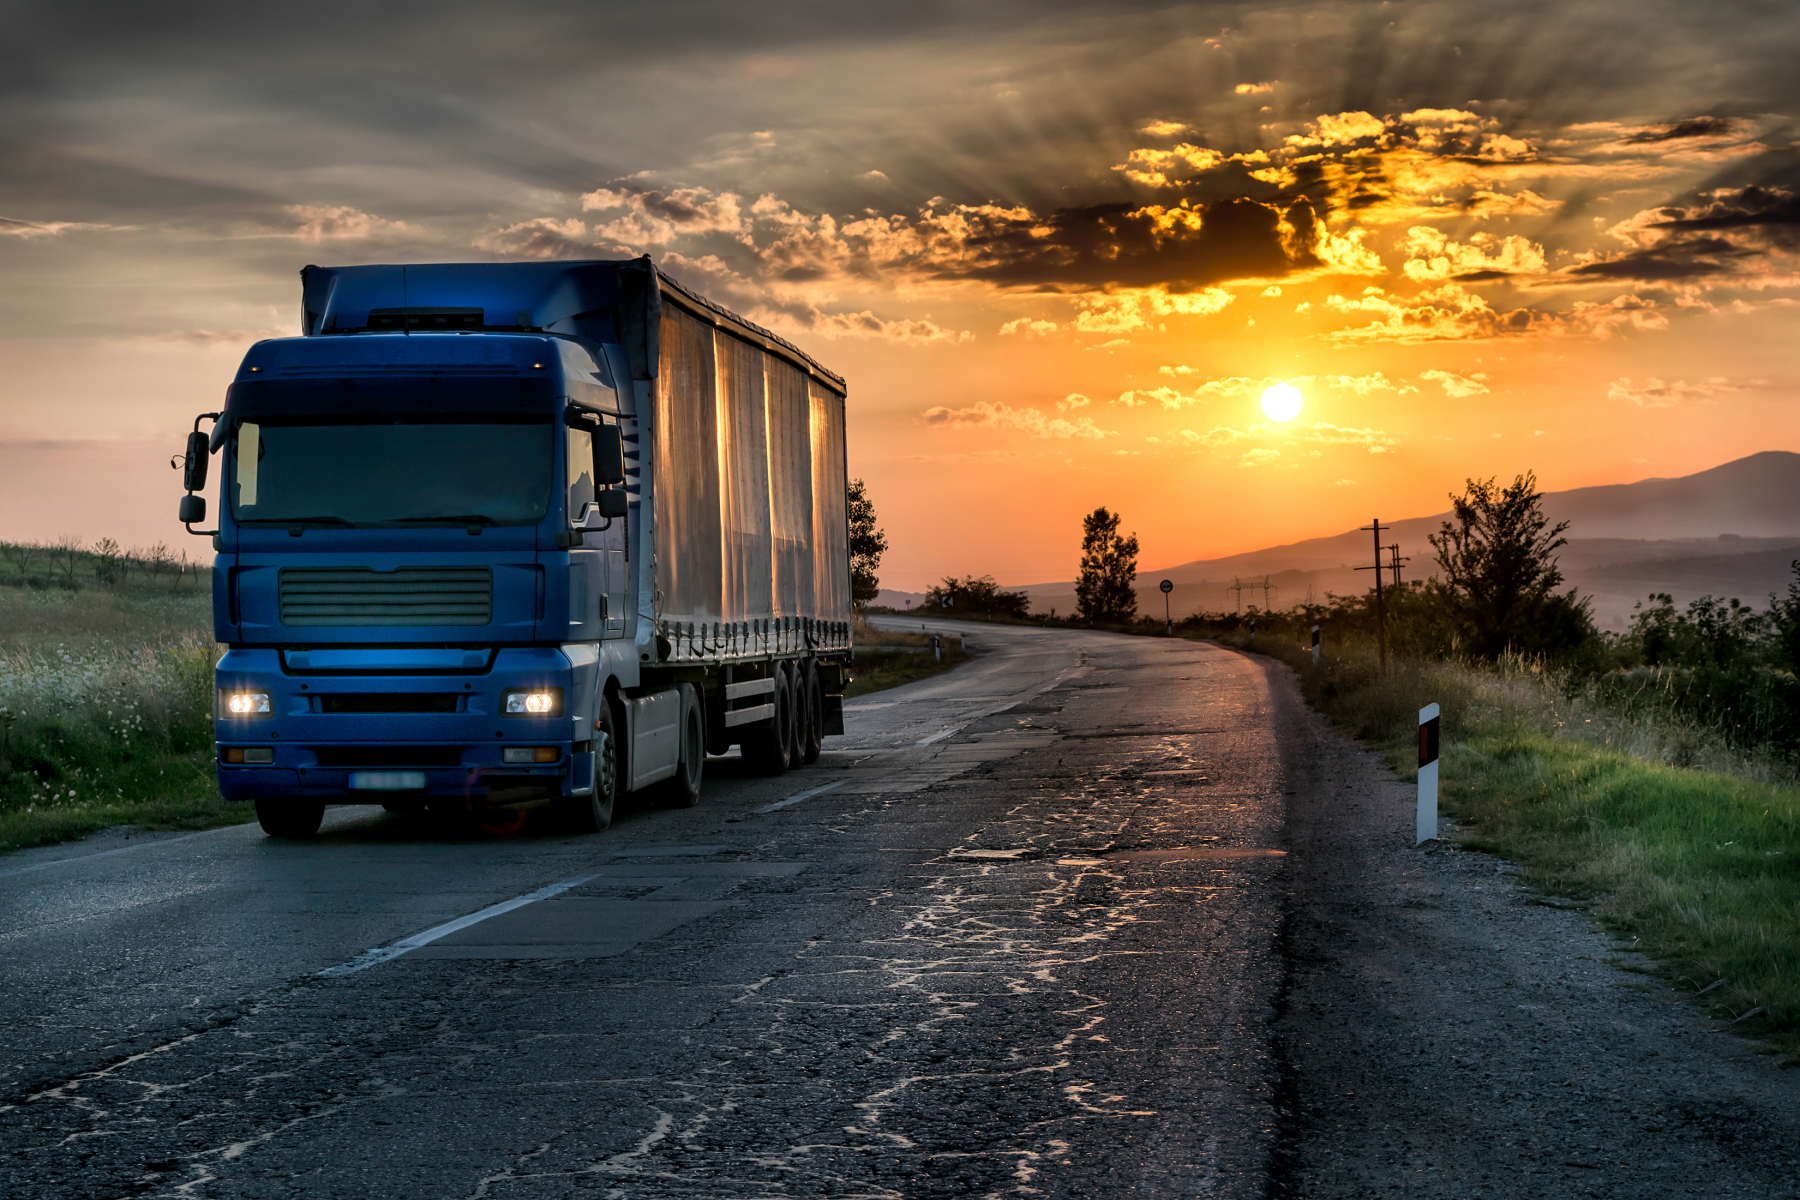 22973647-blue-lorry-on-the-asphalt-rural-road